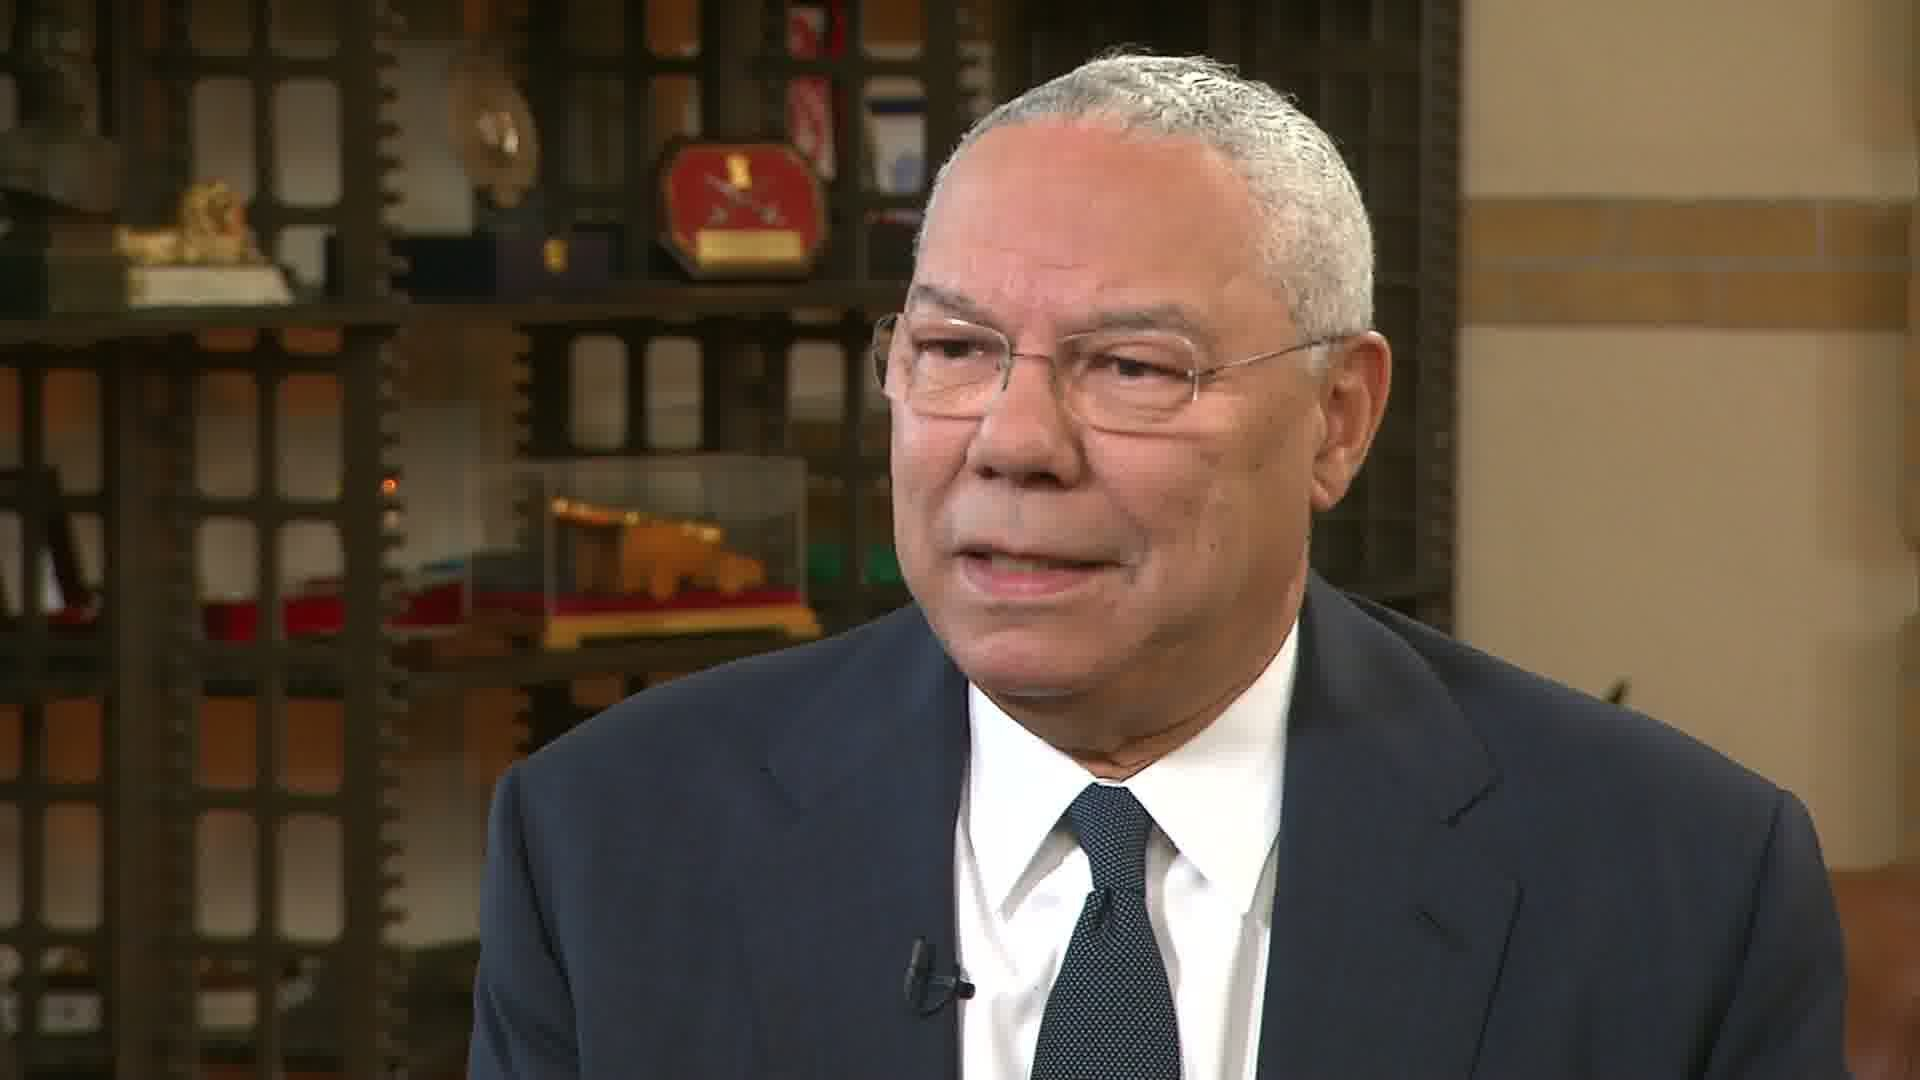 Colin Powell, military leader and first Black US secretary of state, dies after complications from Covid-19